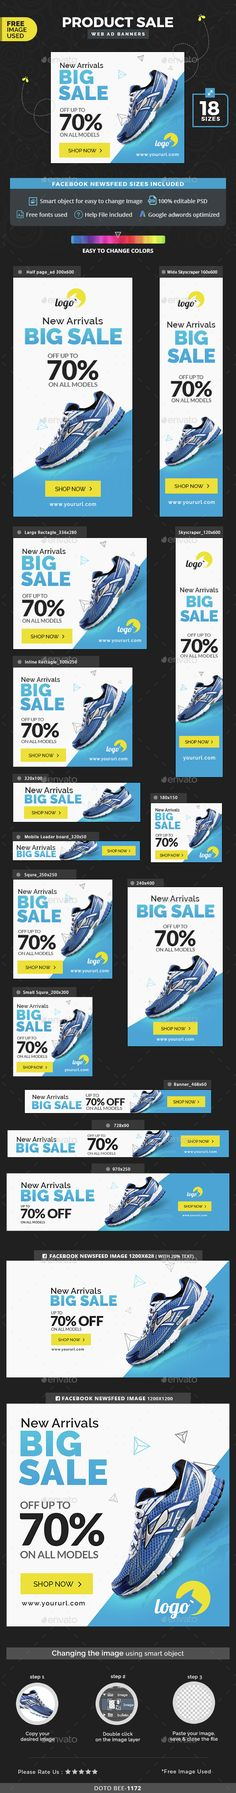 Product Sale Banners - Banners & Ads Web Elements | Download http://graphicriver.net/item/product-sale-banners/15233451?ref=sinzo